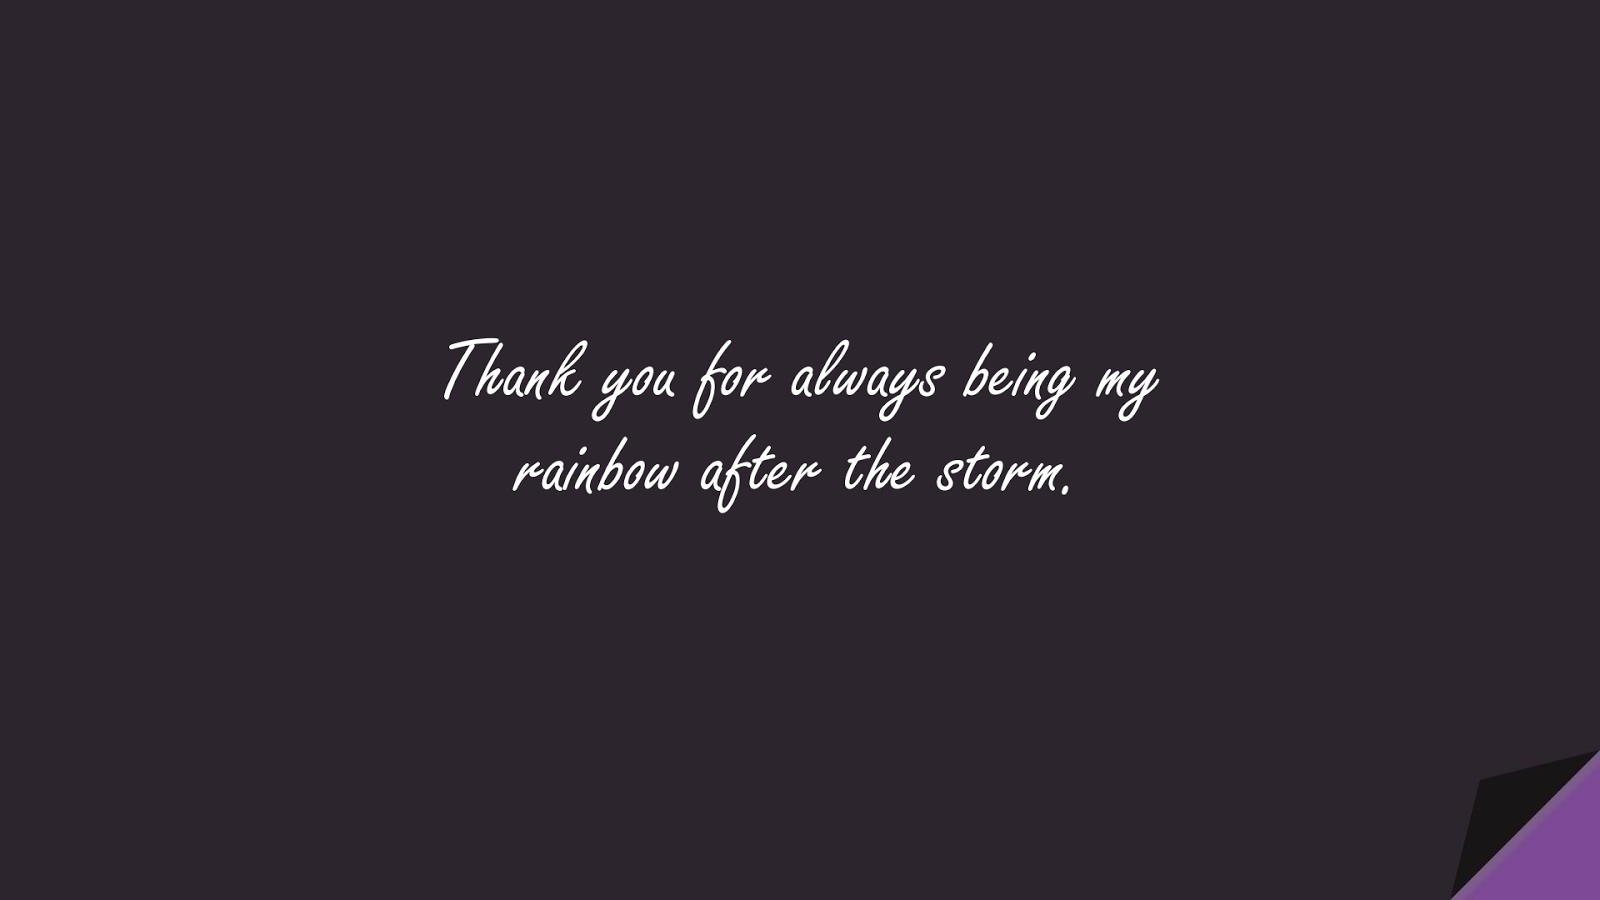 Thank you for always being my rainbow after the storm.FALSE